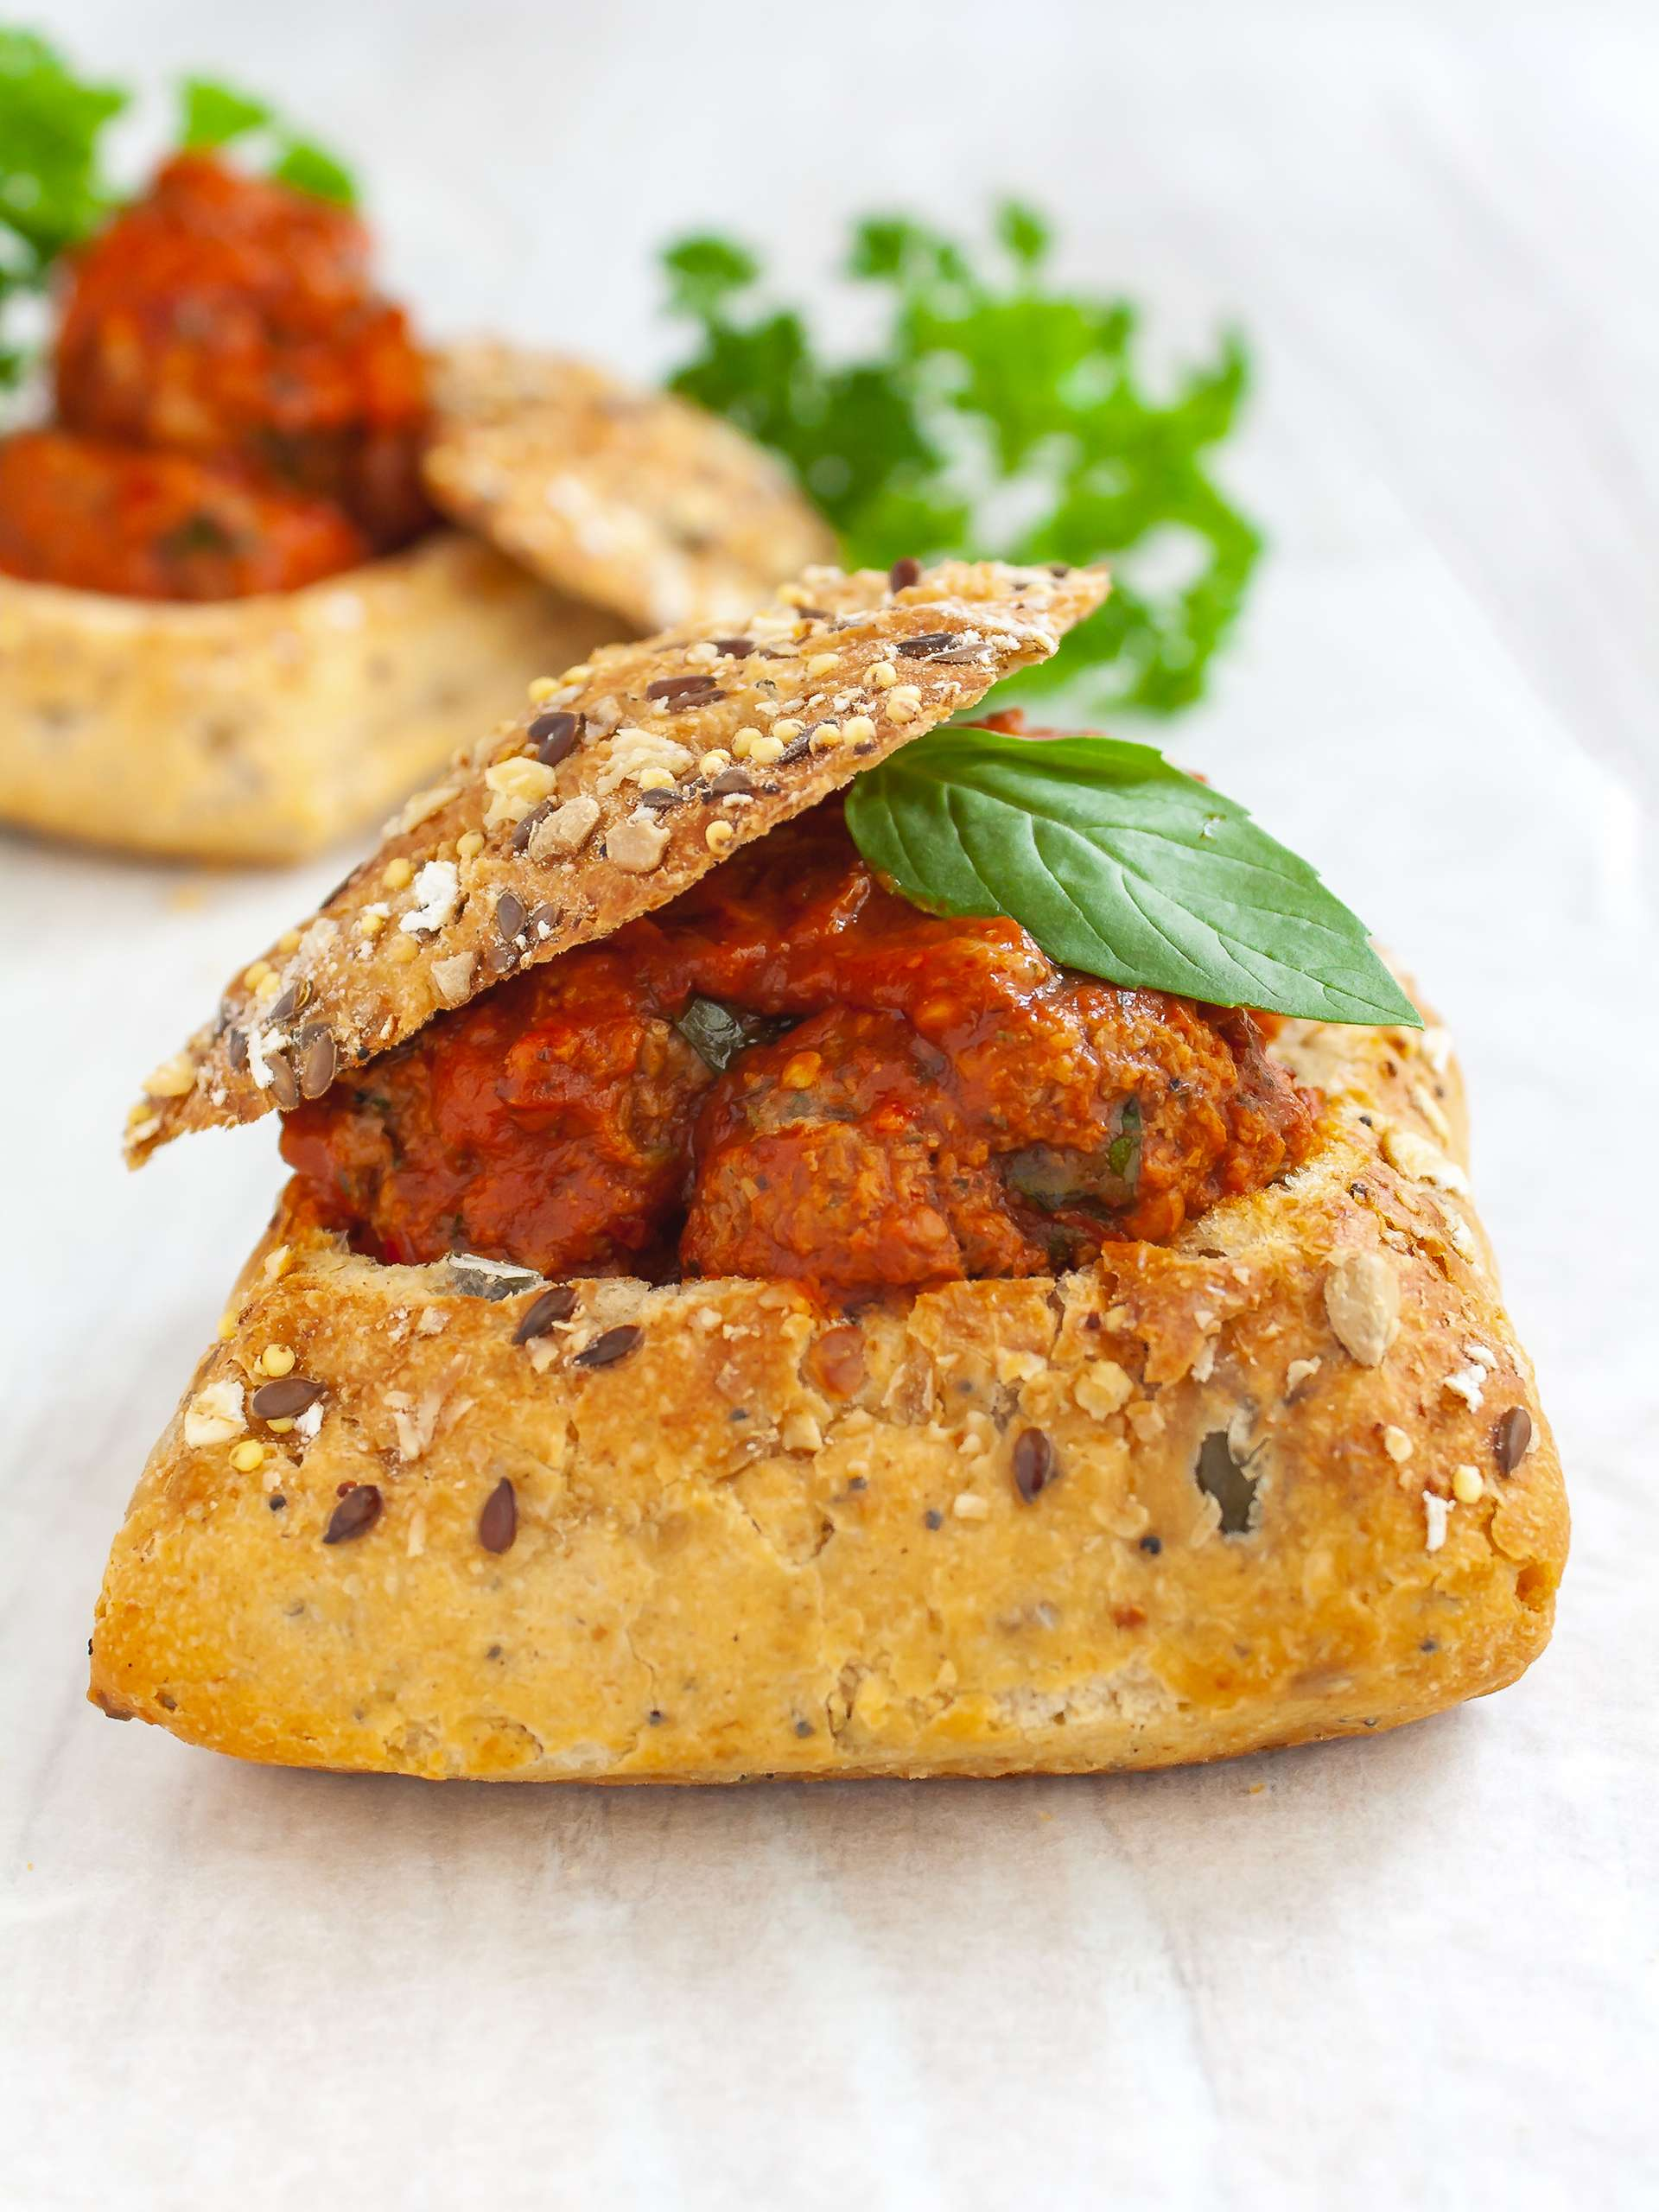 Gluten Free Dairy Free Egg Free Meatballs in Bread Bowl Thumbnail